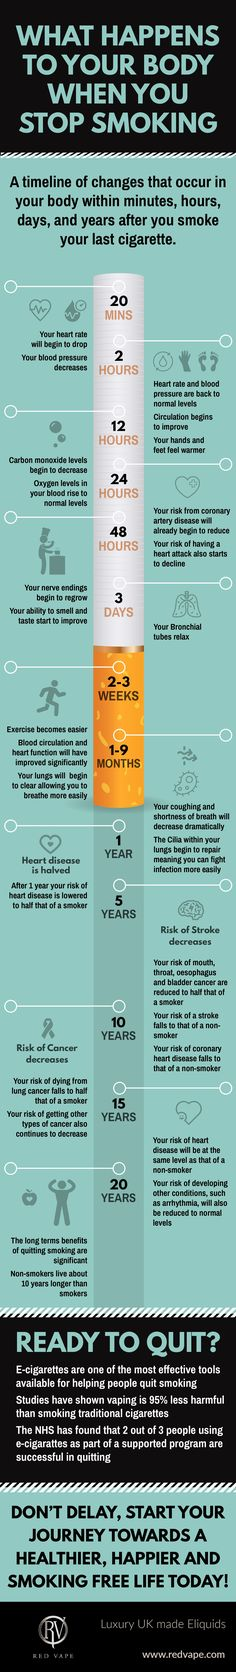 The Health Benefits of Quitting Smoking                                                                                                                                                                                 More